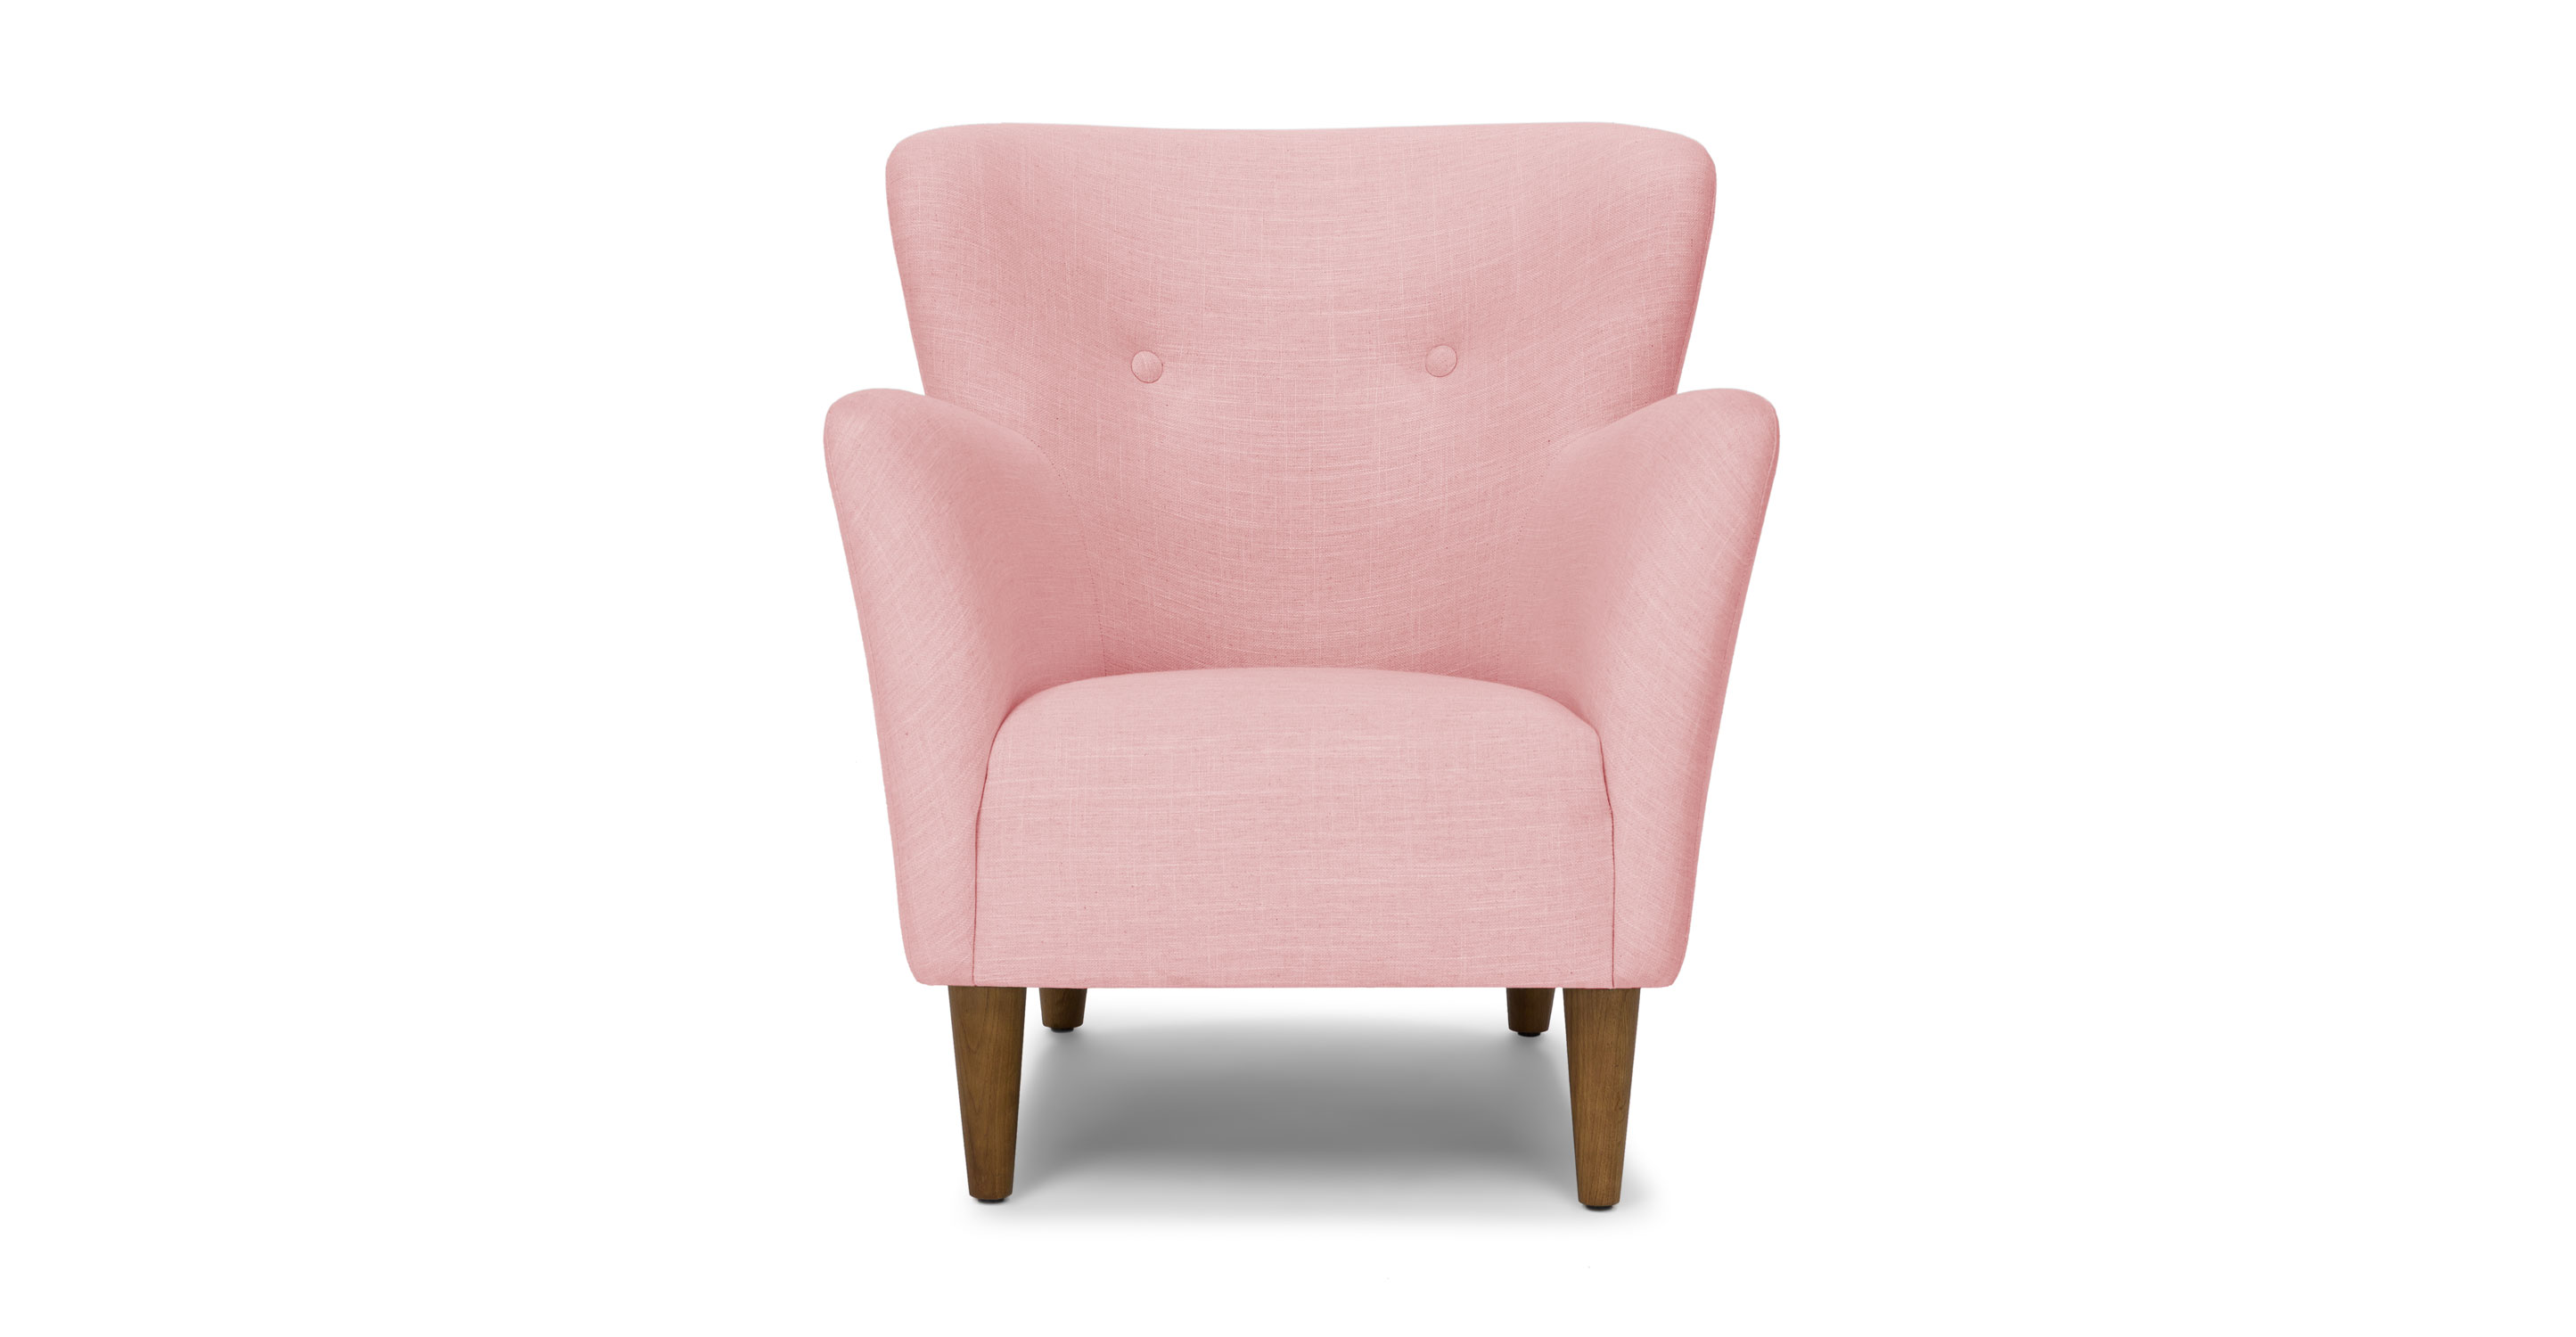 pink club chair covers hire wetherill park happy quartz rose armchair lounge chairs article